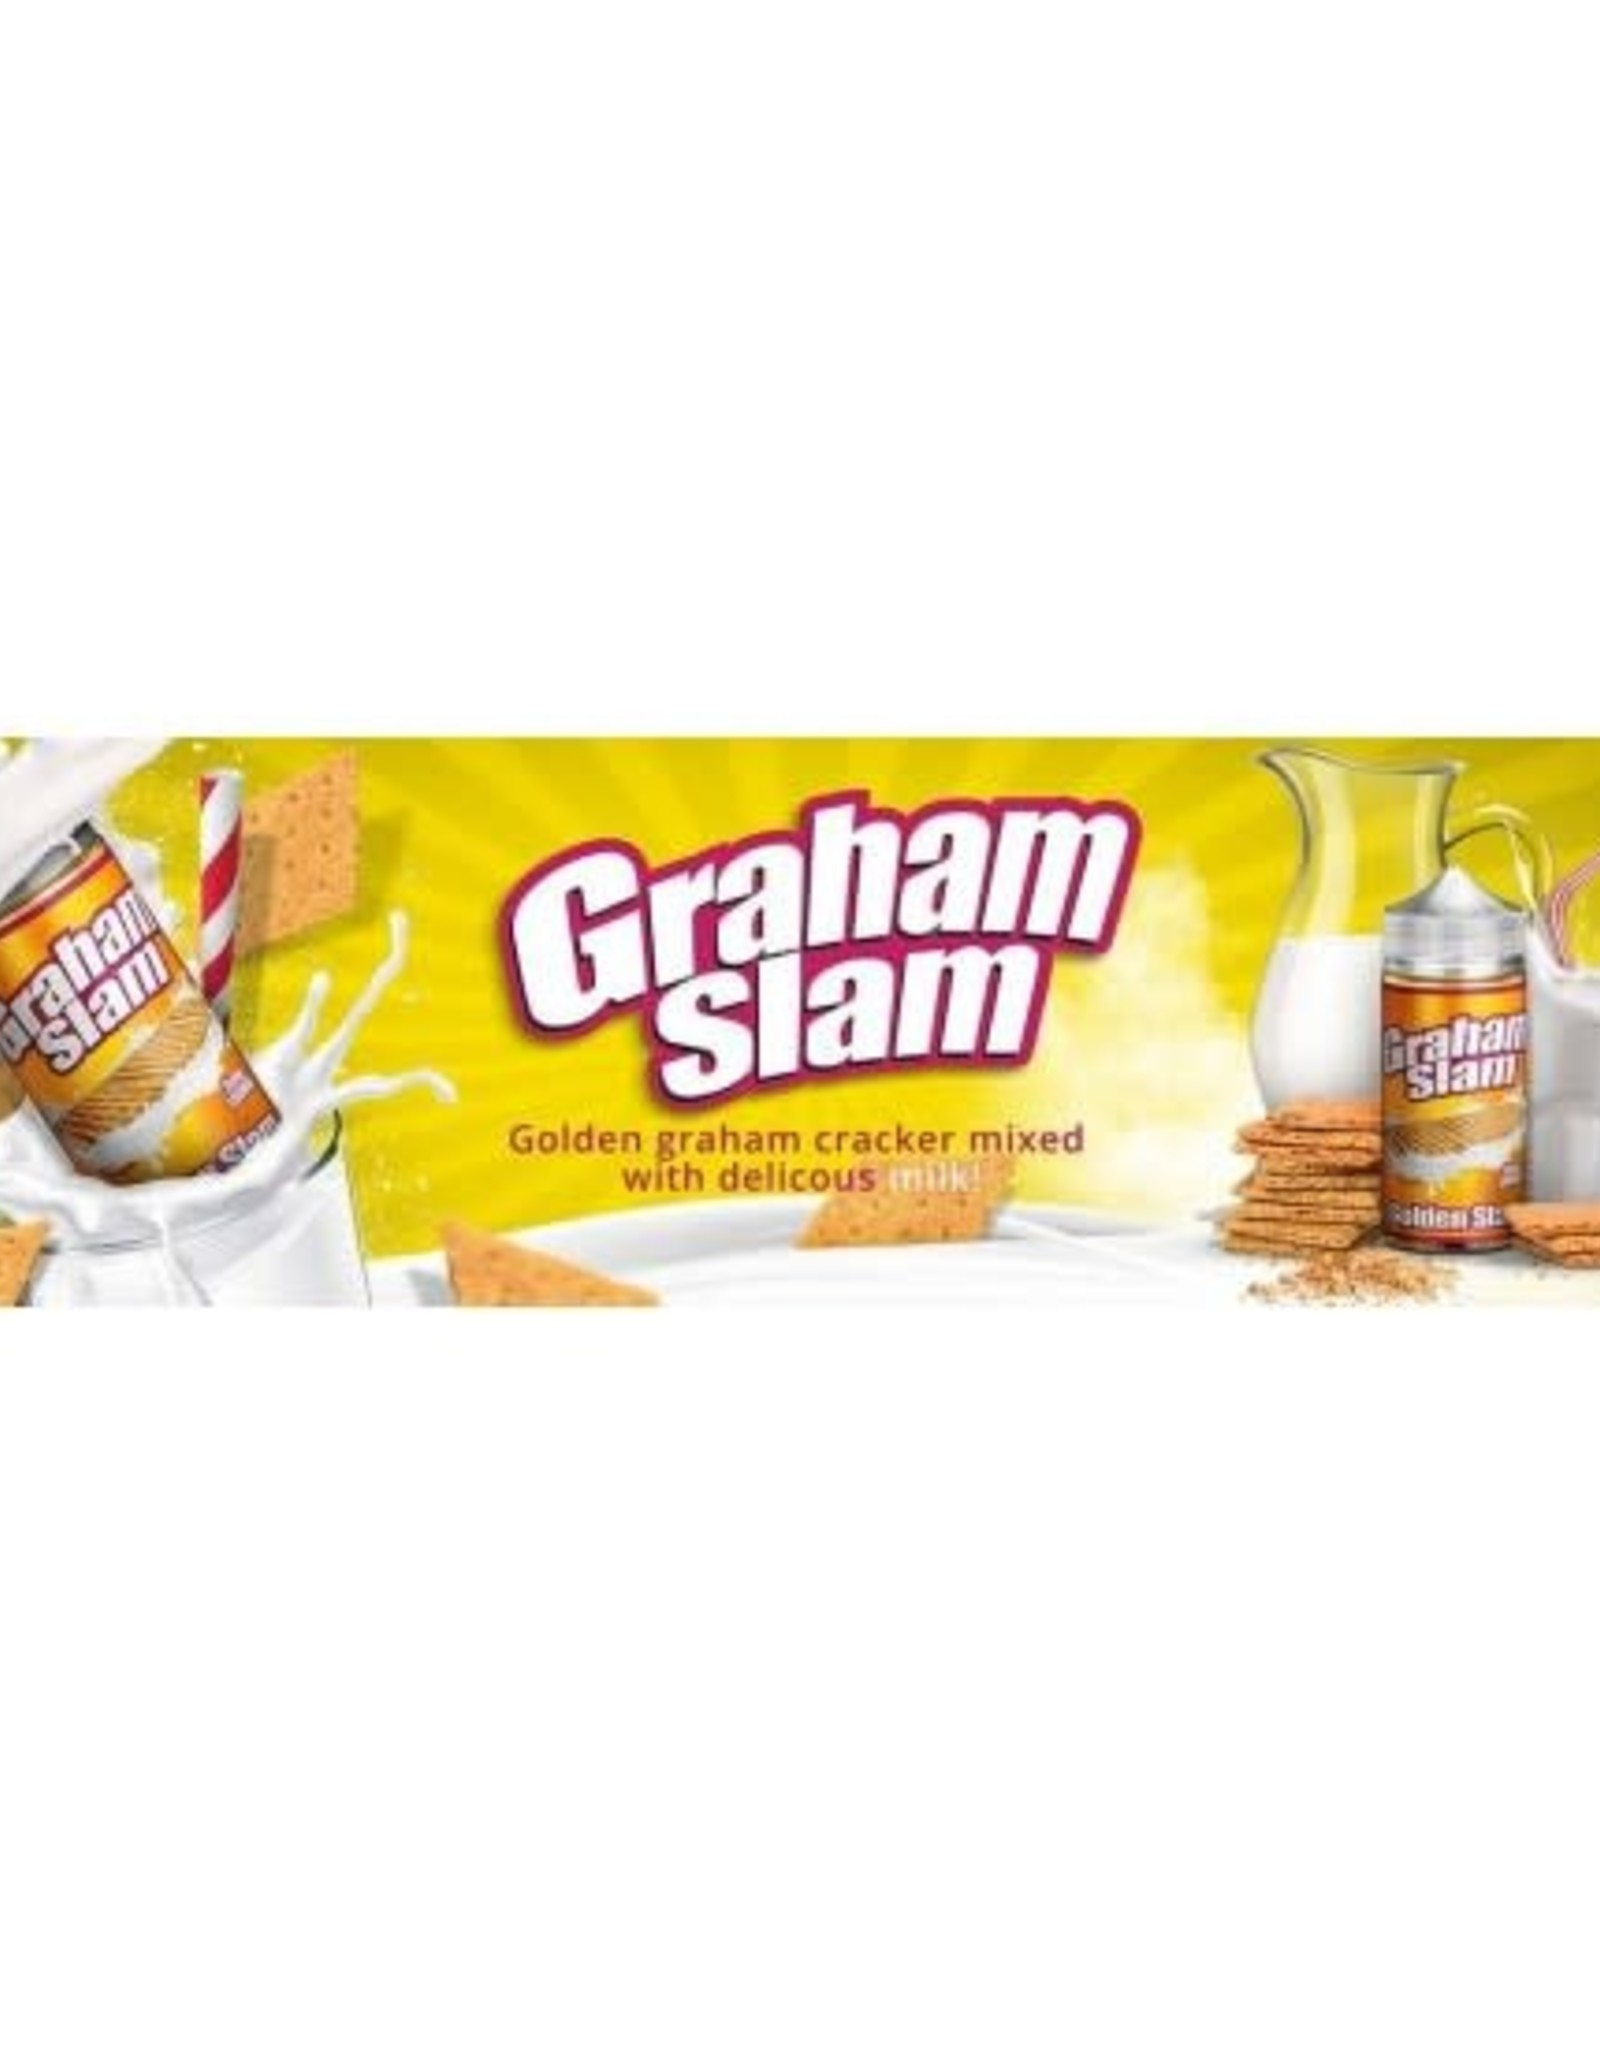 GRAHAM SLAM GOLDEN SLAM BY GRAHAM SLAM